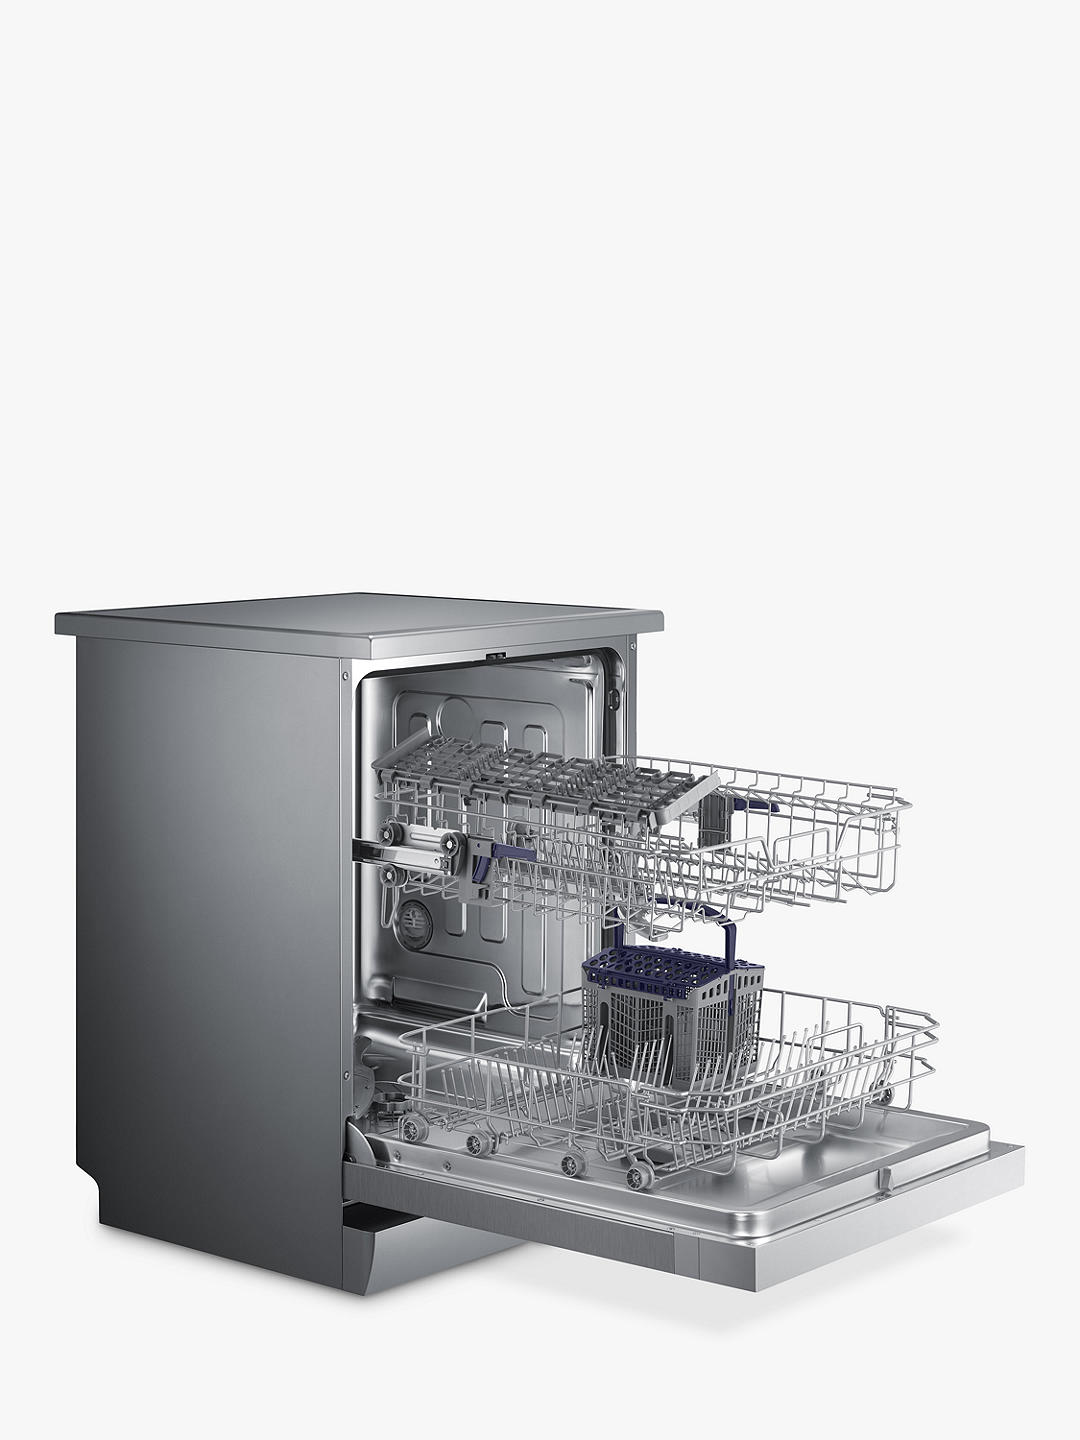 Buy Samsung DW60M5050FS/EU Freestanding Dishwasher, A+ Energy Rated, Silver Online at johnlewis.com